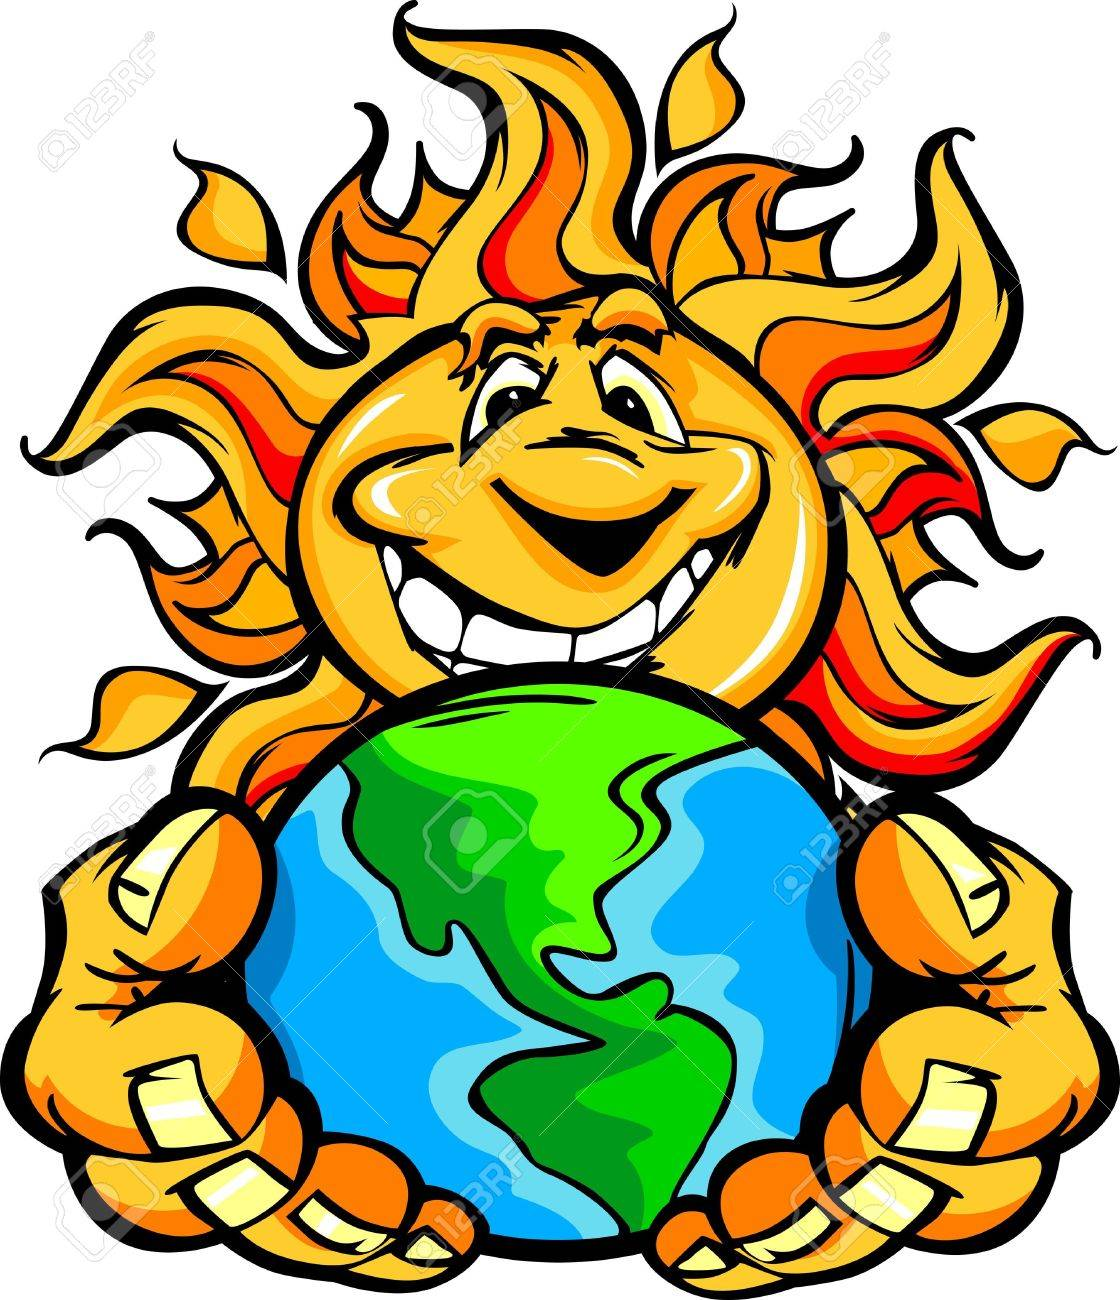 1120x1300 Cartoon Illustration Of A Happy Smiling Summer Sun Holding Earth